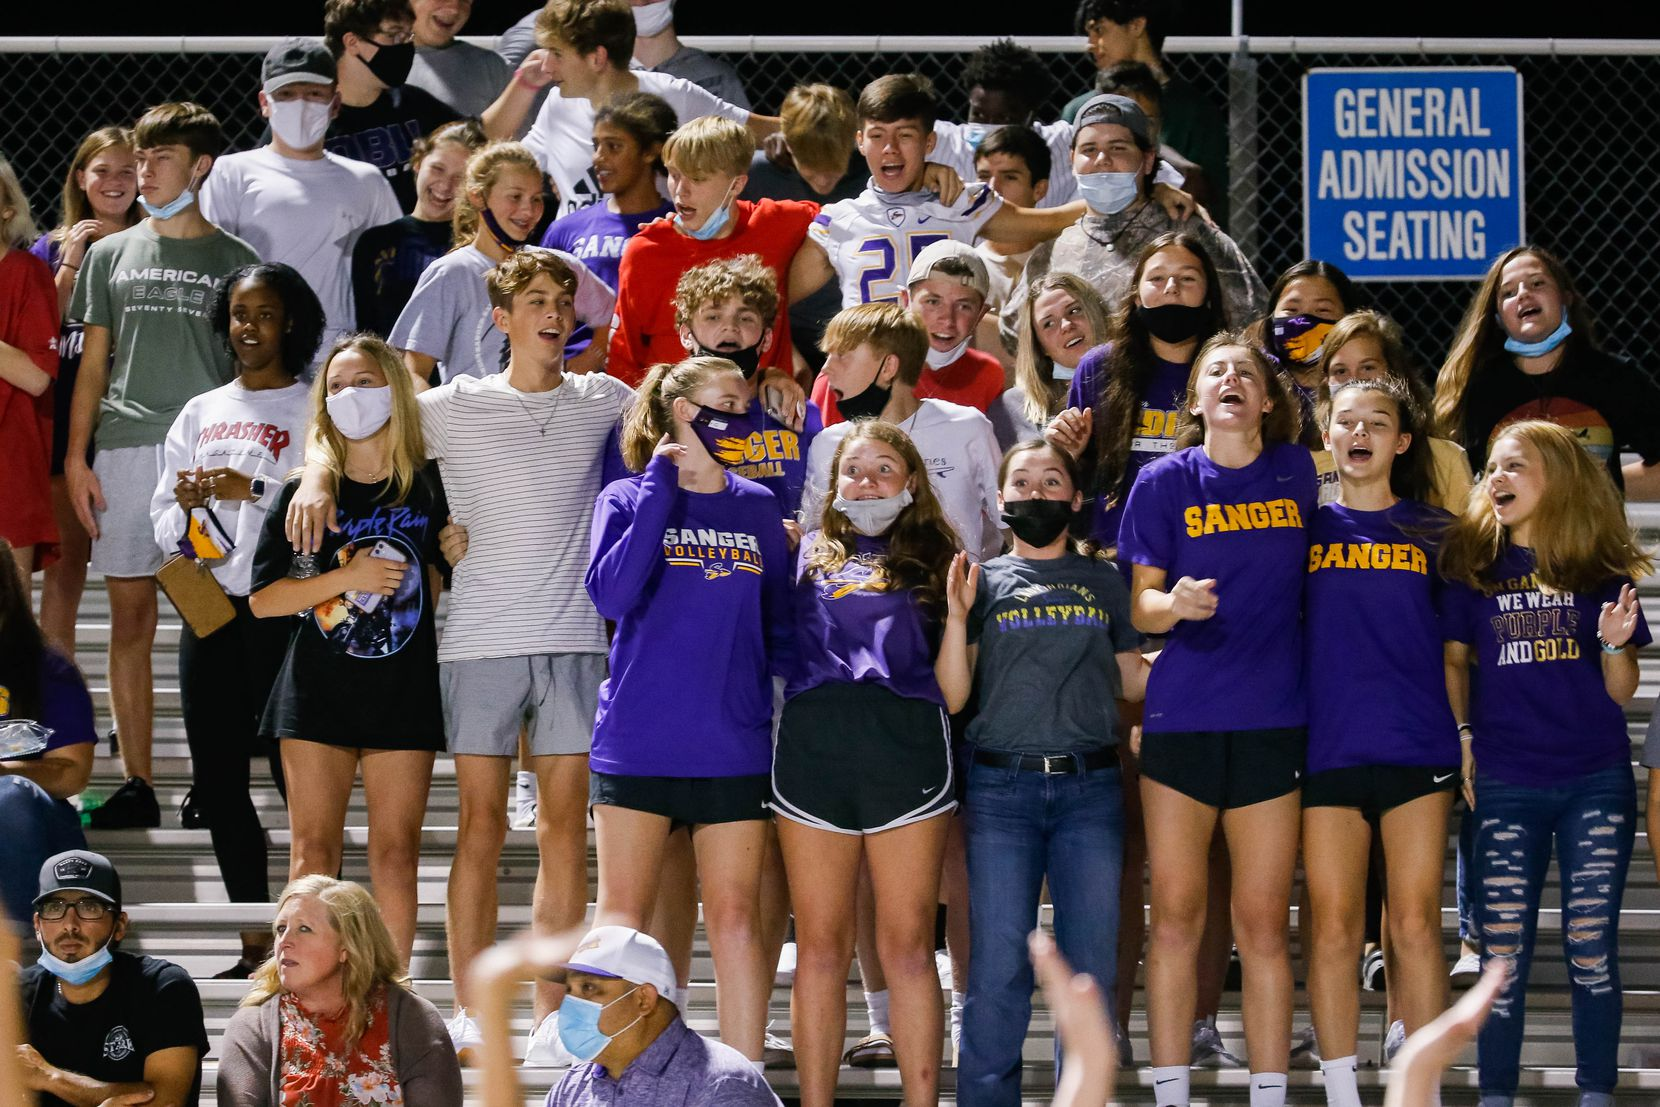 Sanger High School students watch a game against Lake Worth High School's during the second half of a game on Sept. 4, 2020 in Sanger. Sanger leads 26-14 at halftime. (Juan Figueroa/ The Dallas Morning News)